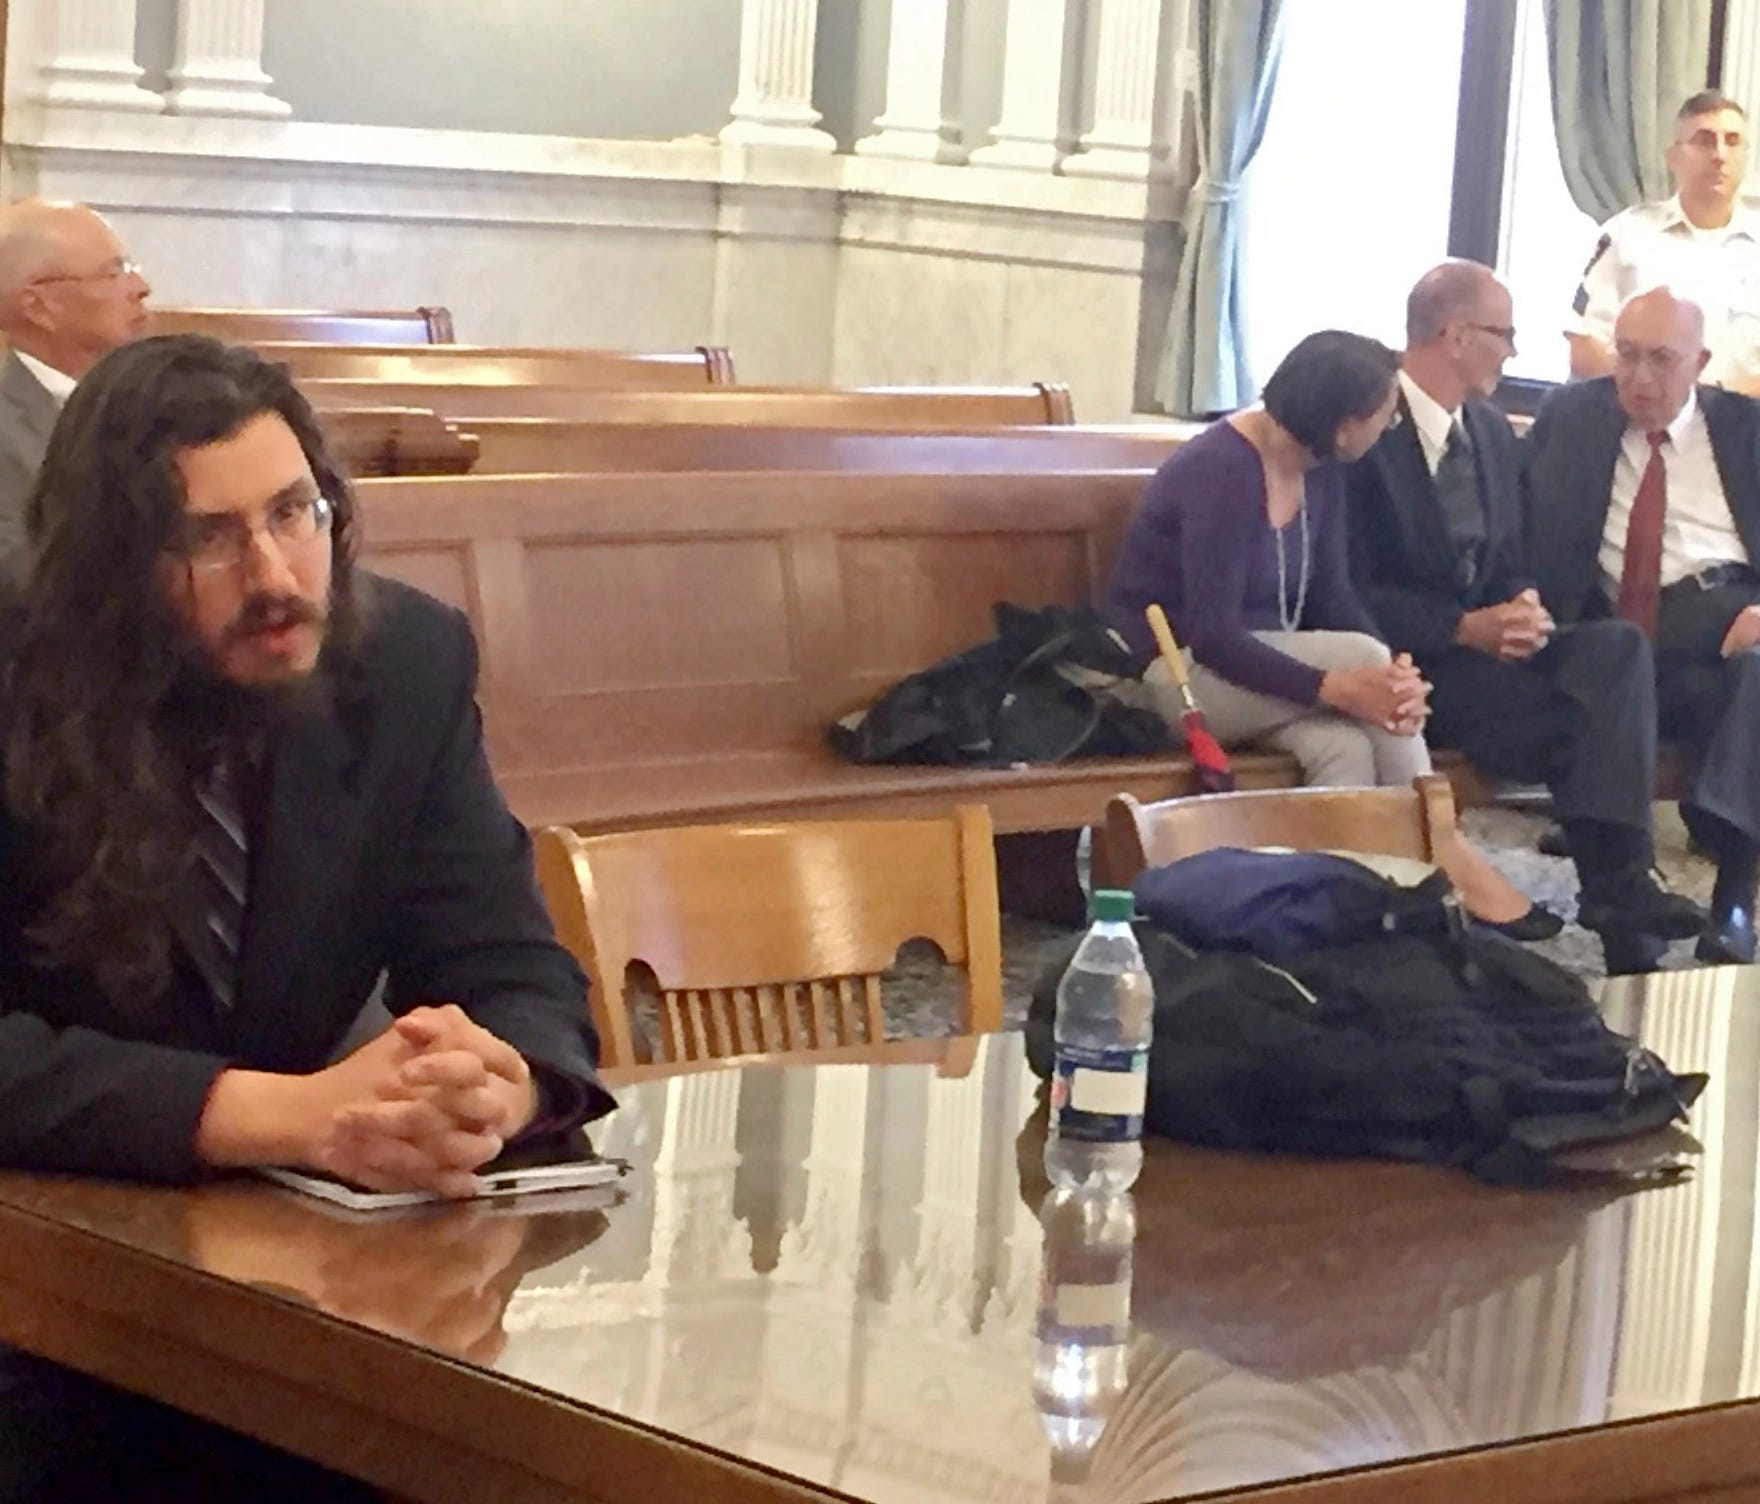 Michael Rotondo, left, sits during an eviction proceeding in Syracuse, N.Y., brought by his parents, Mark and Christina, of Camillus. The two parents confer with their lawyer, Anthony Adorante, in the court gallery behind. Rotondo told the judge Tues